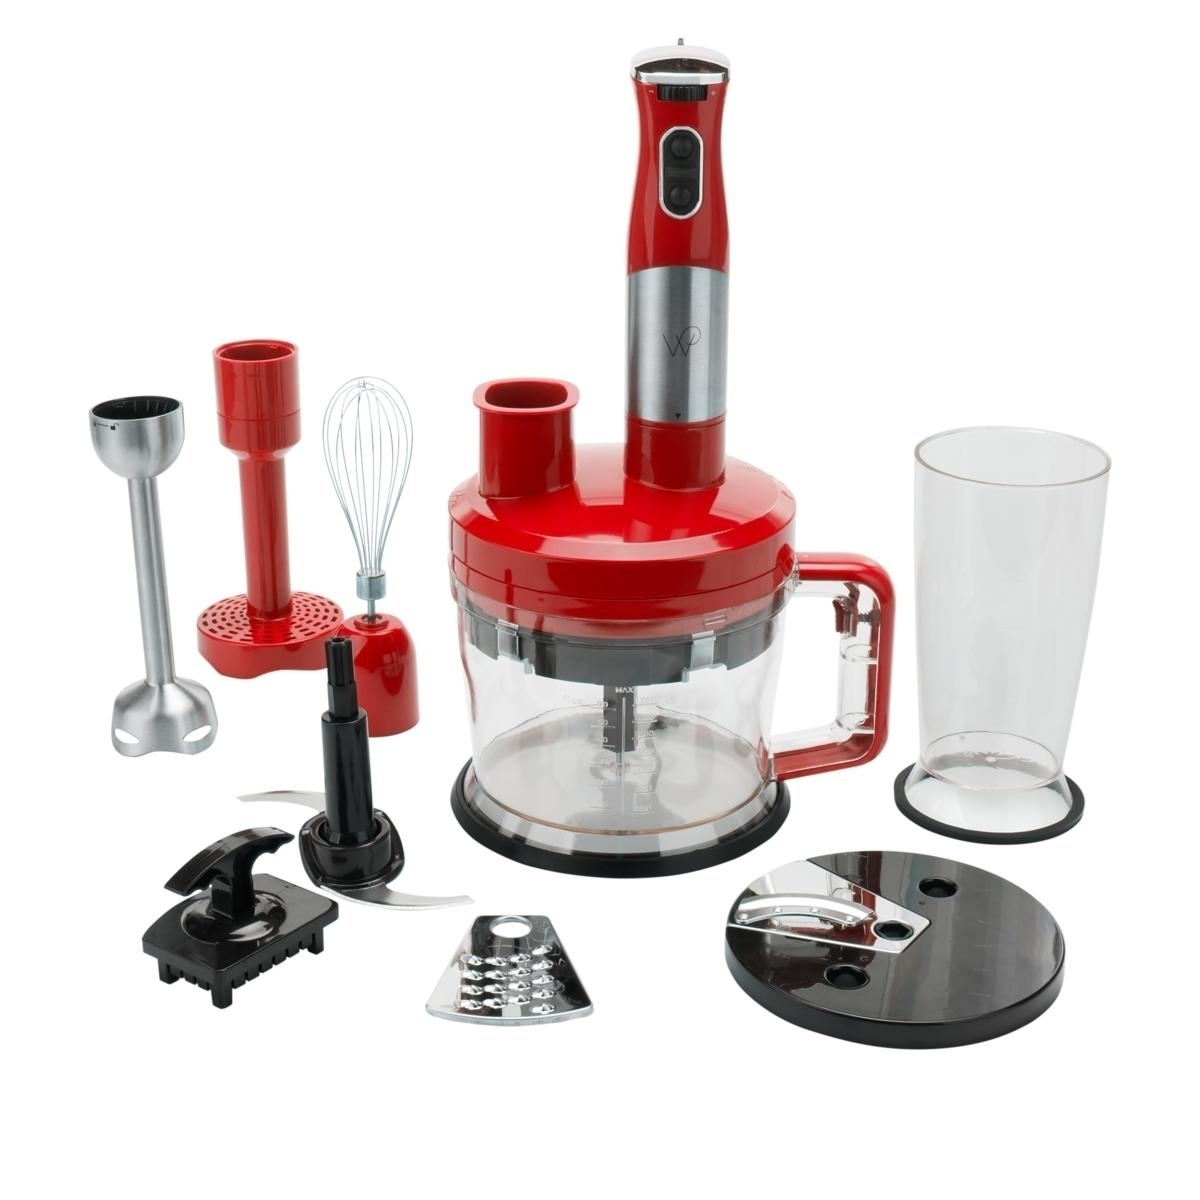 Puck 7 In 1 Immersion Blender With